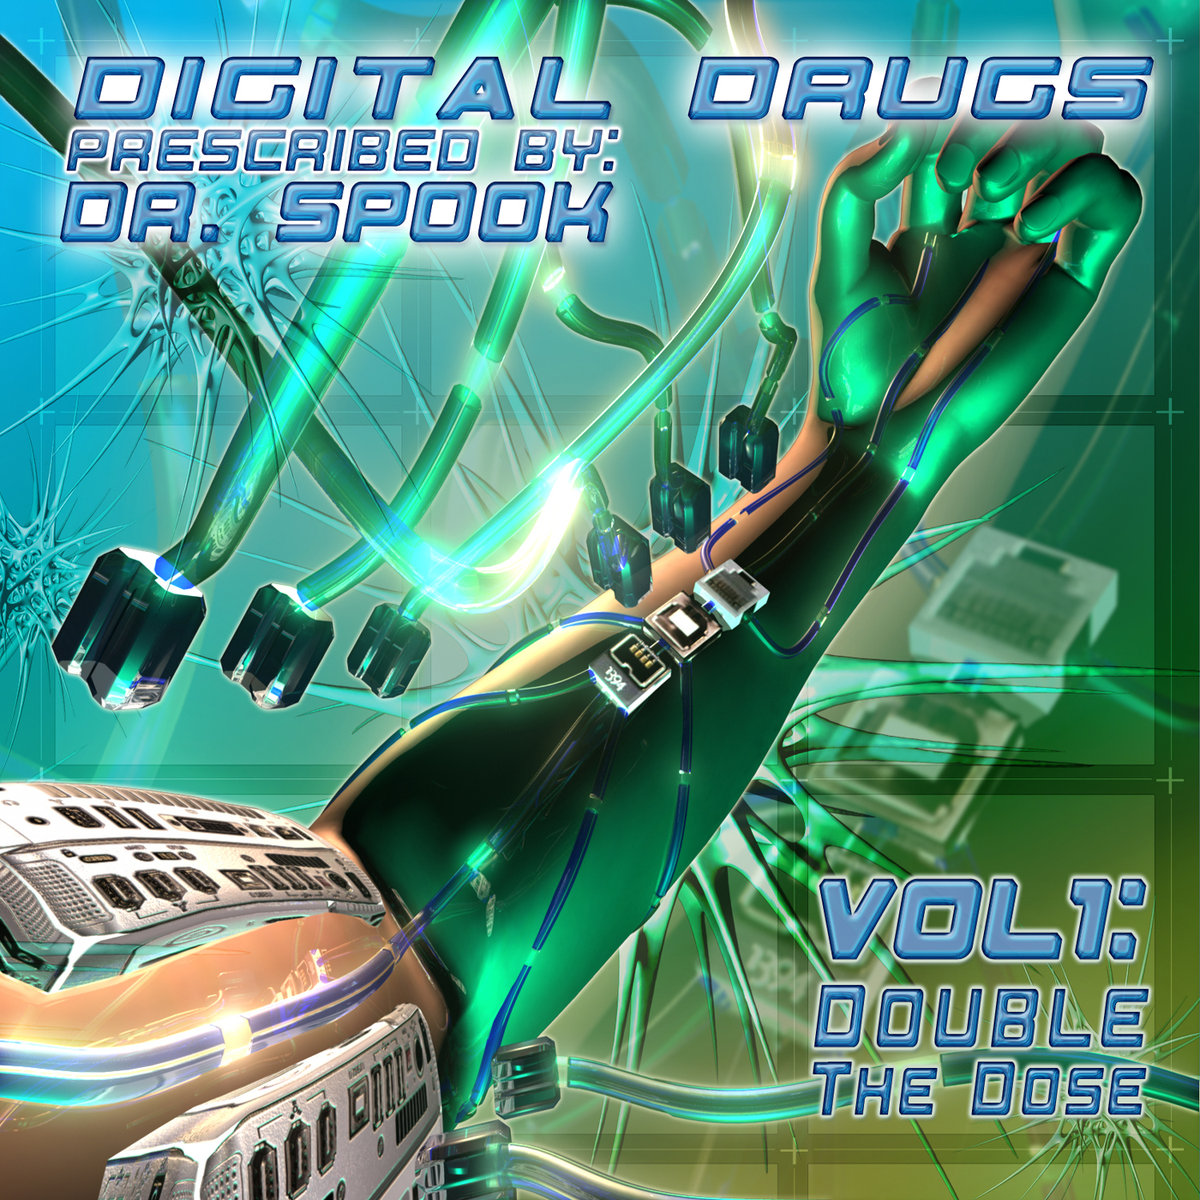 Various Artists - Digital Drugs Vol.1: Double the Dose (Prescribed by Dr. Spook) @ 'Various Artists - Digital Drugs Vol.1: Double the Dose (Prescribed by Dr. Spook)' album (electronic, goa)